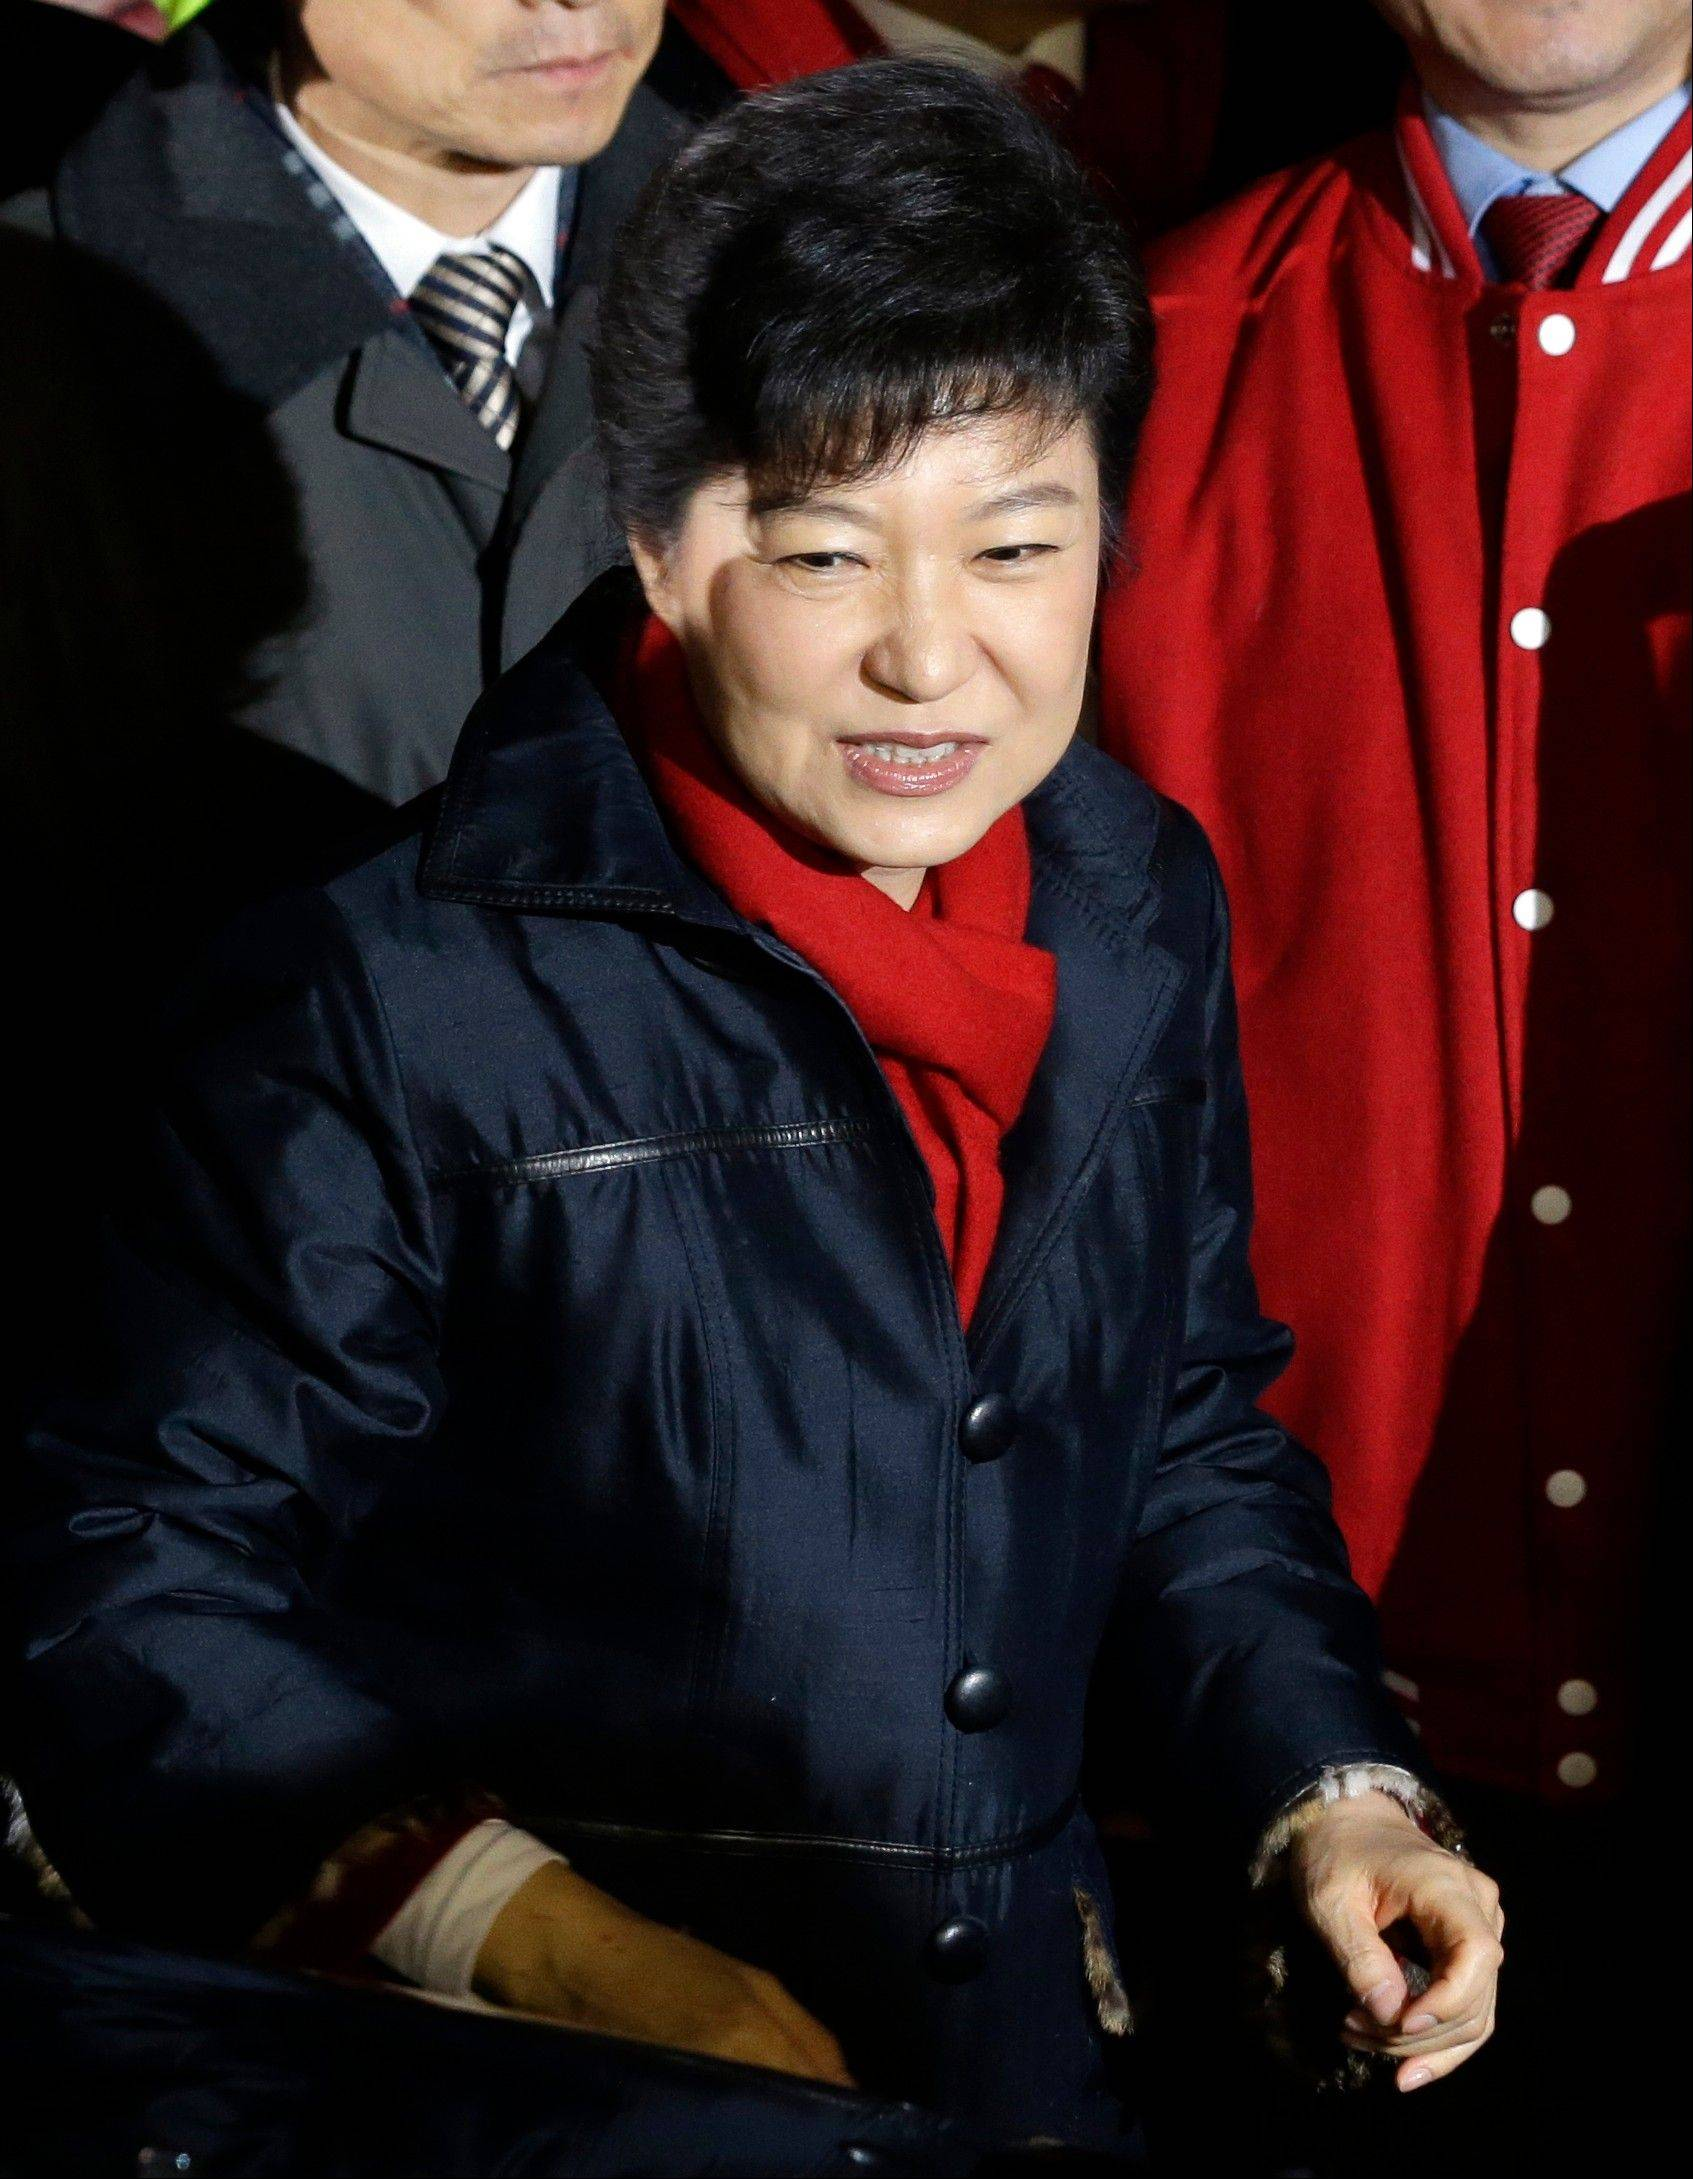 Ruling-party candidate Park Geun-hye was elected South Korean president Wednesday, becoming the country�s first female leader despite the incumbent�s unpopularity and her own past as the daughter of a divisive dictator.